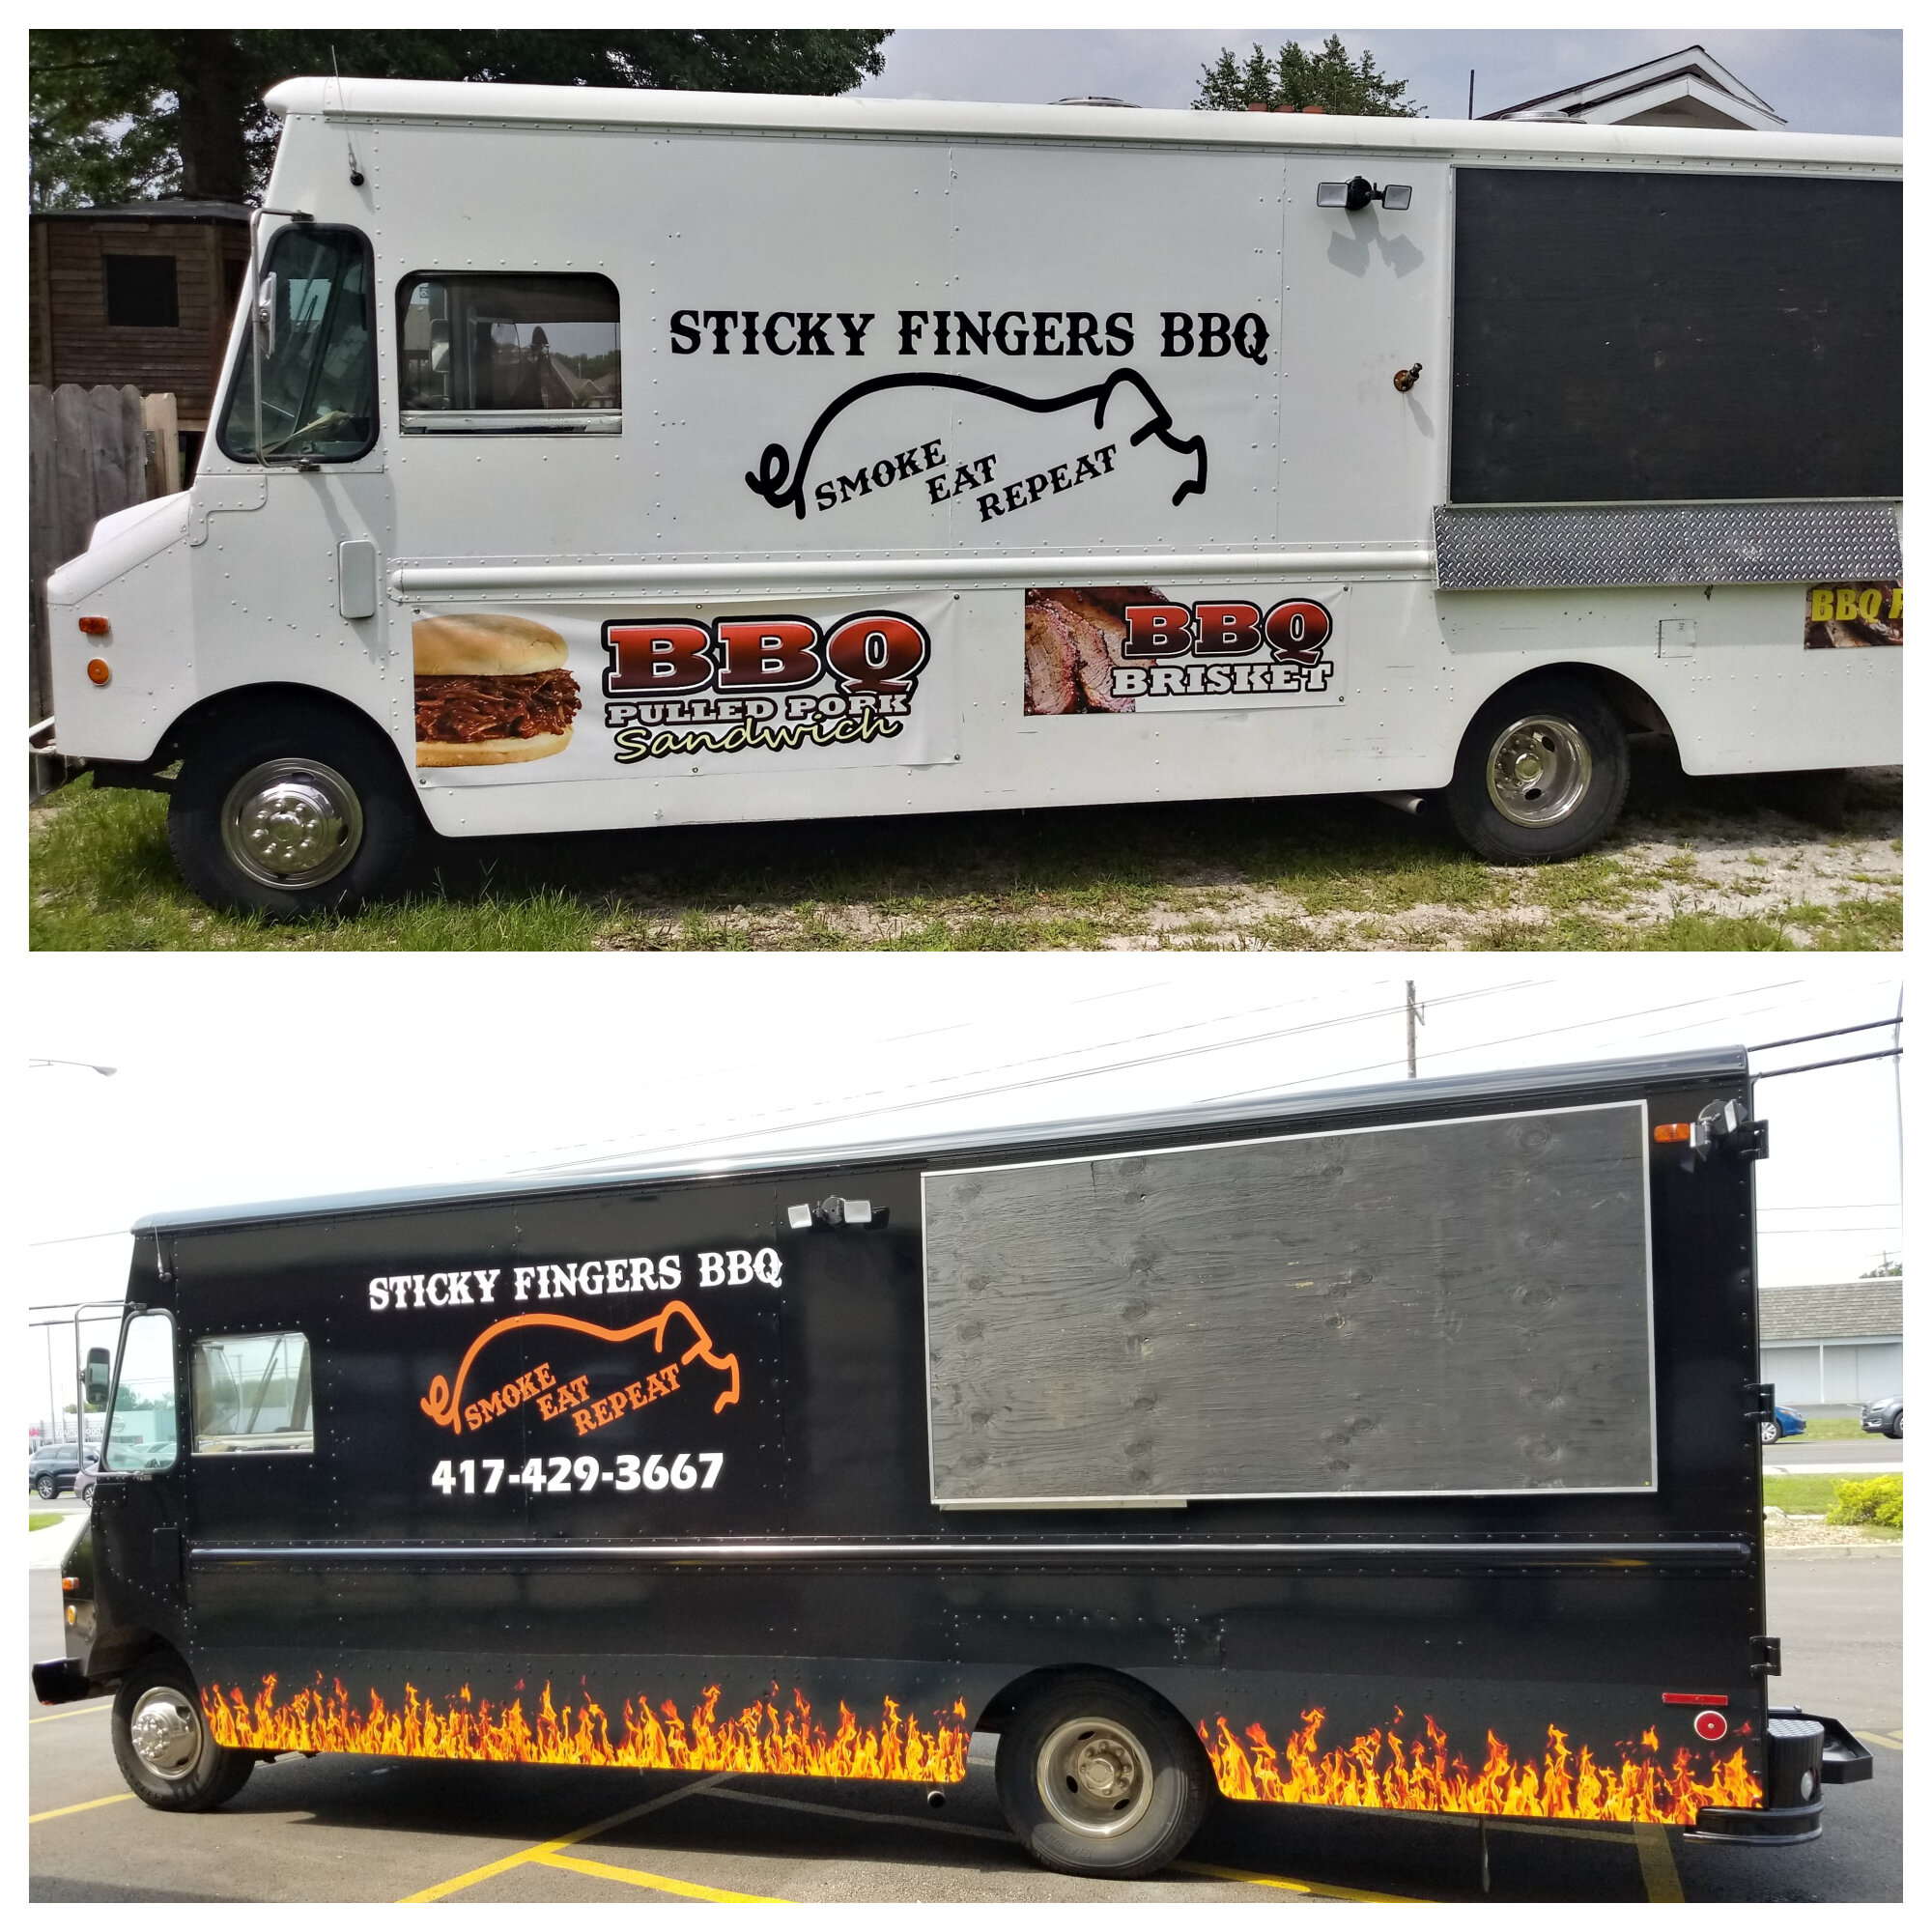 Sticky Fingers BBQ - Food Truck Redesign